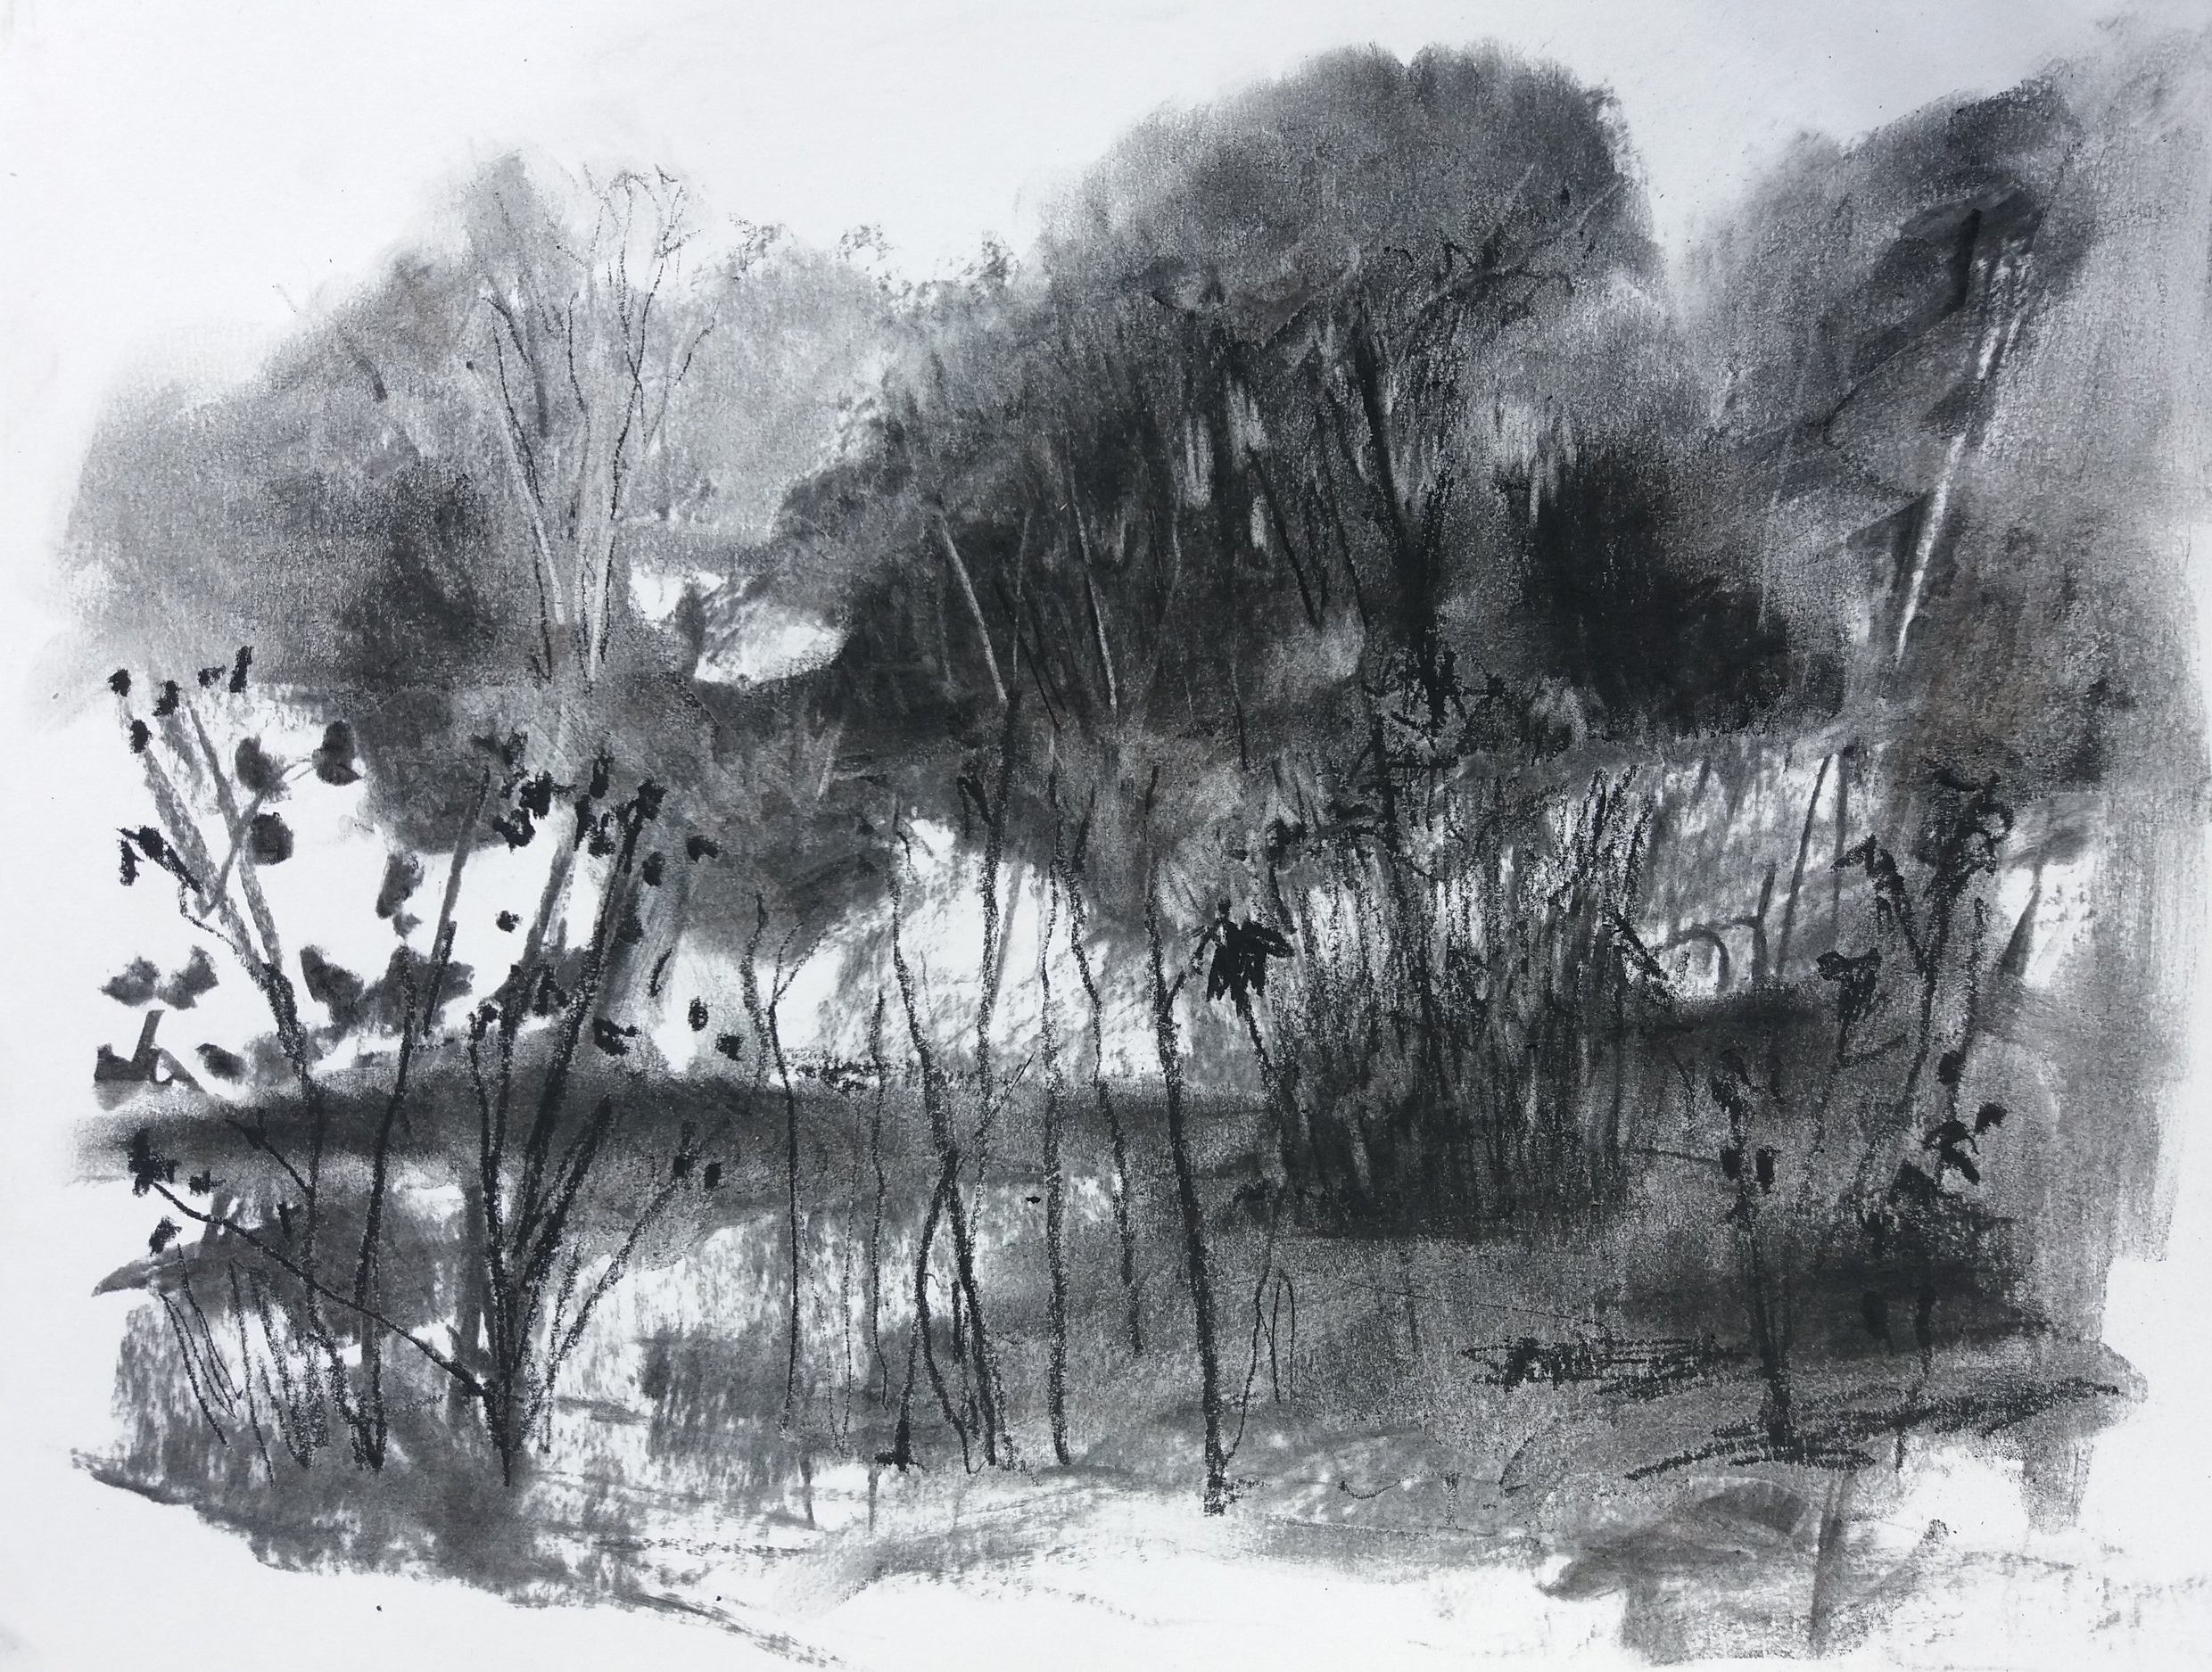 The Day with Butterflies charcoal on paper